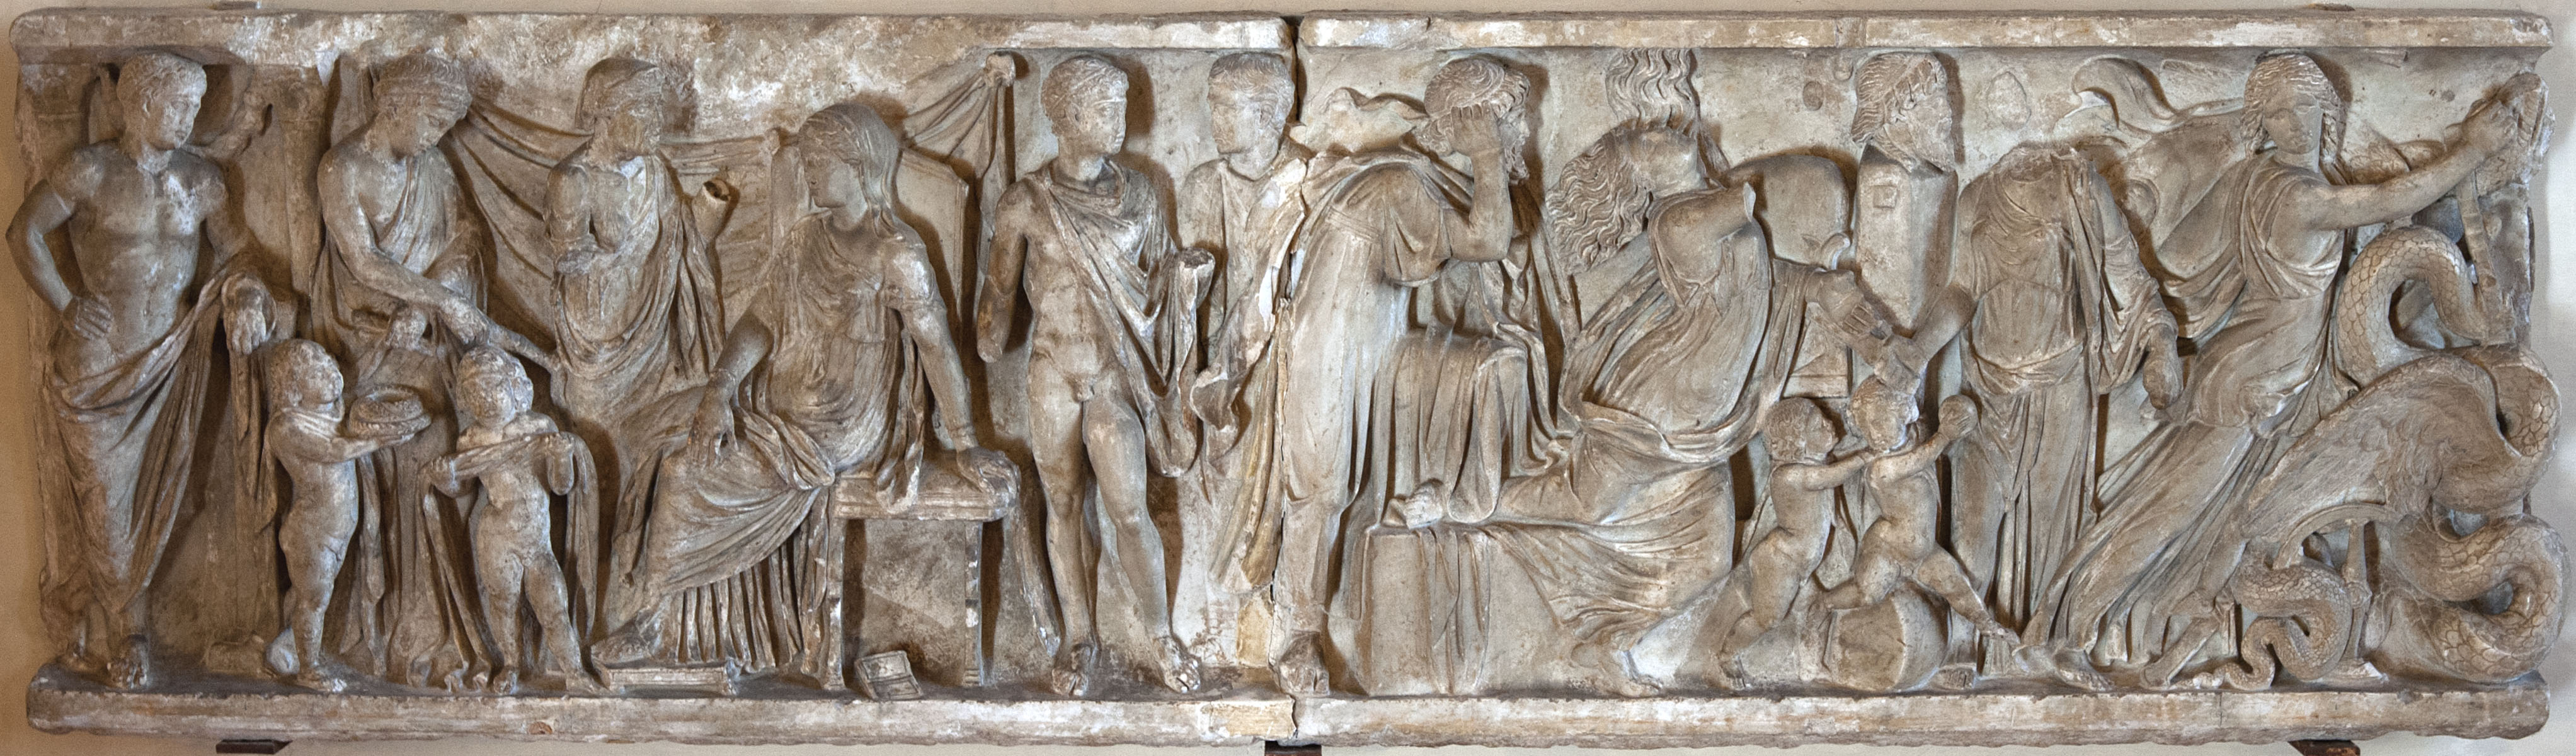 Scenes of the myth of Medea. Front panel of sarcophagus. Luna marble. Mid-2nd cent. CE.  Inv. No. 6763. Mantua, Ducal Palace